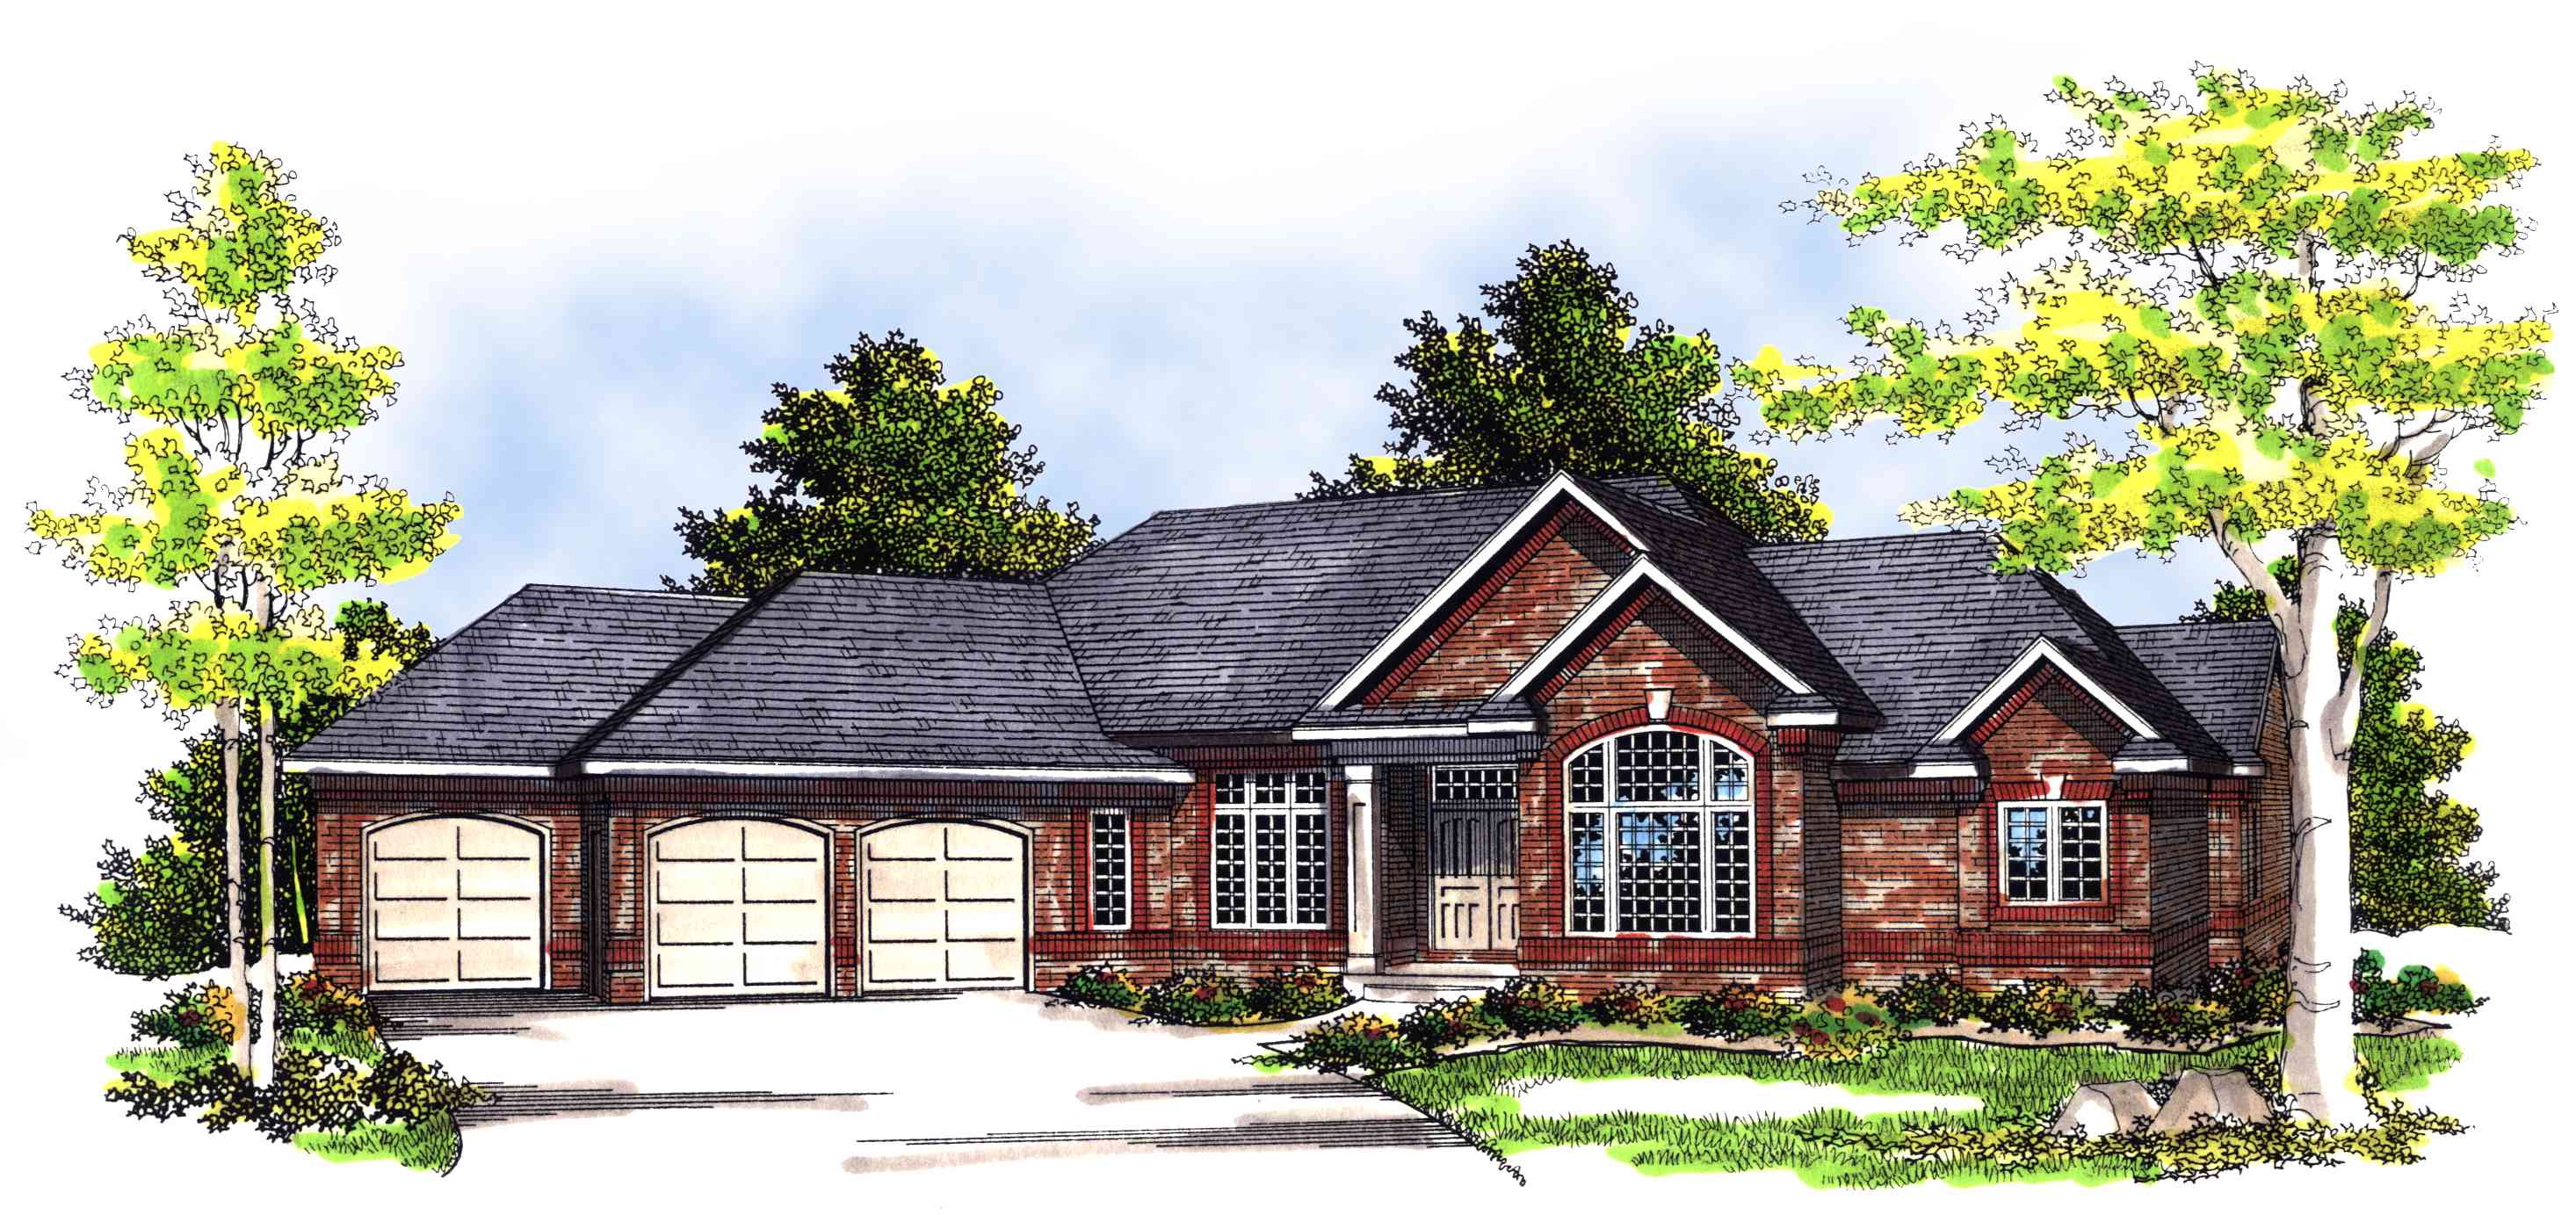 Angled ranch home plan 89442ah architectural designs for Angled house plans